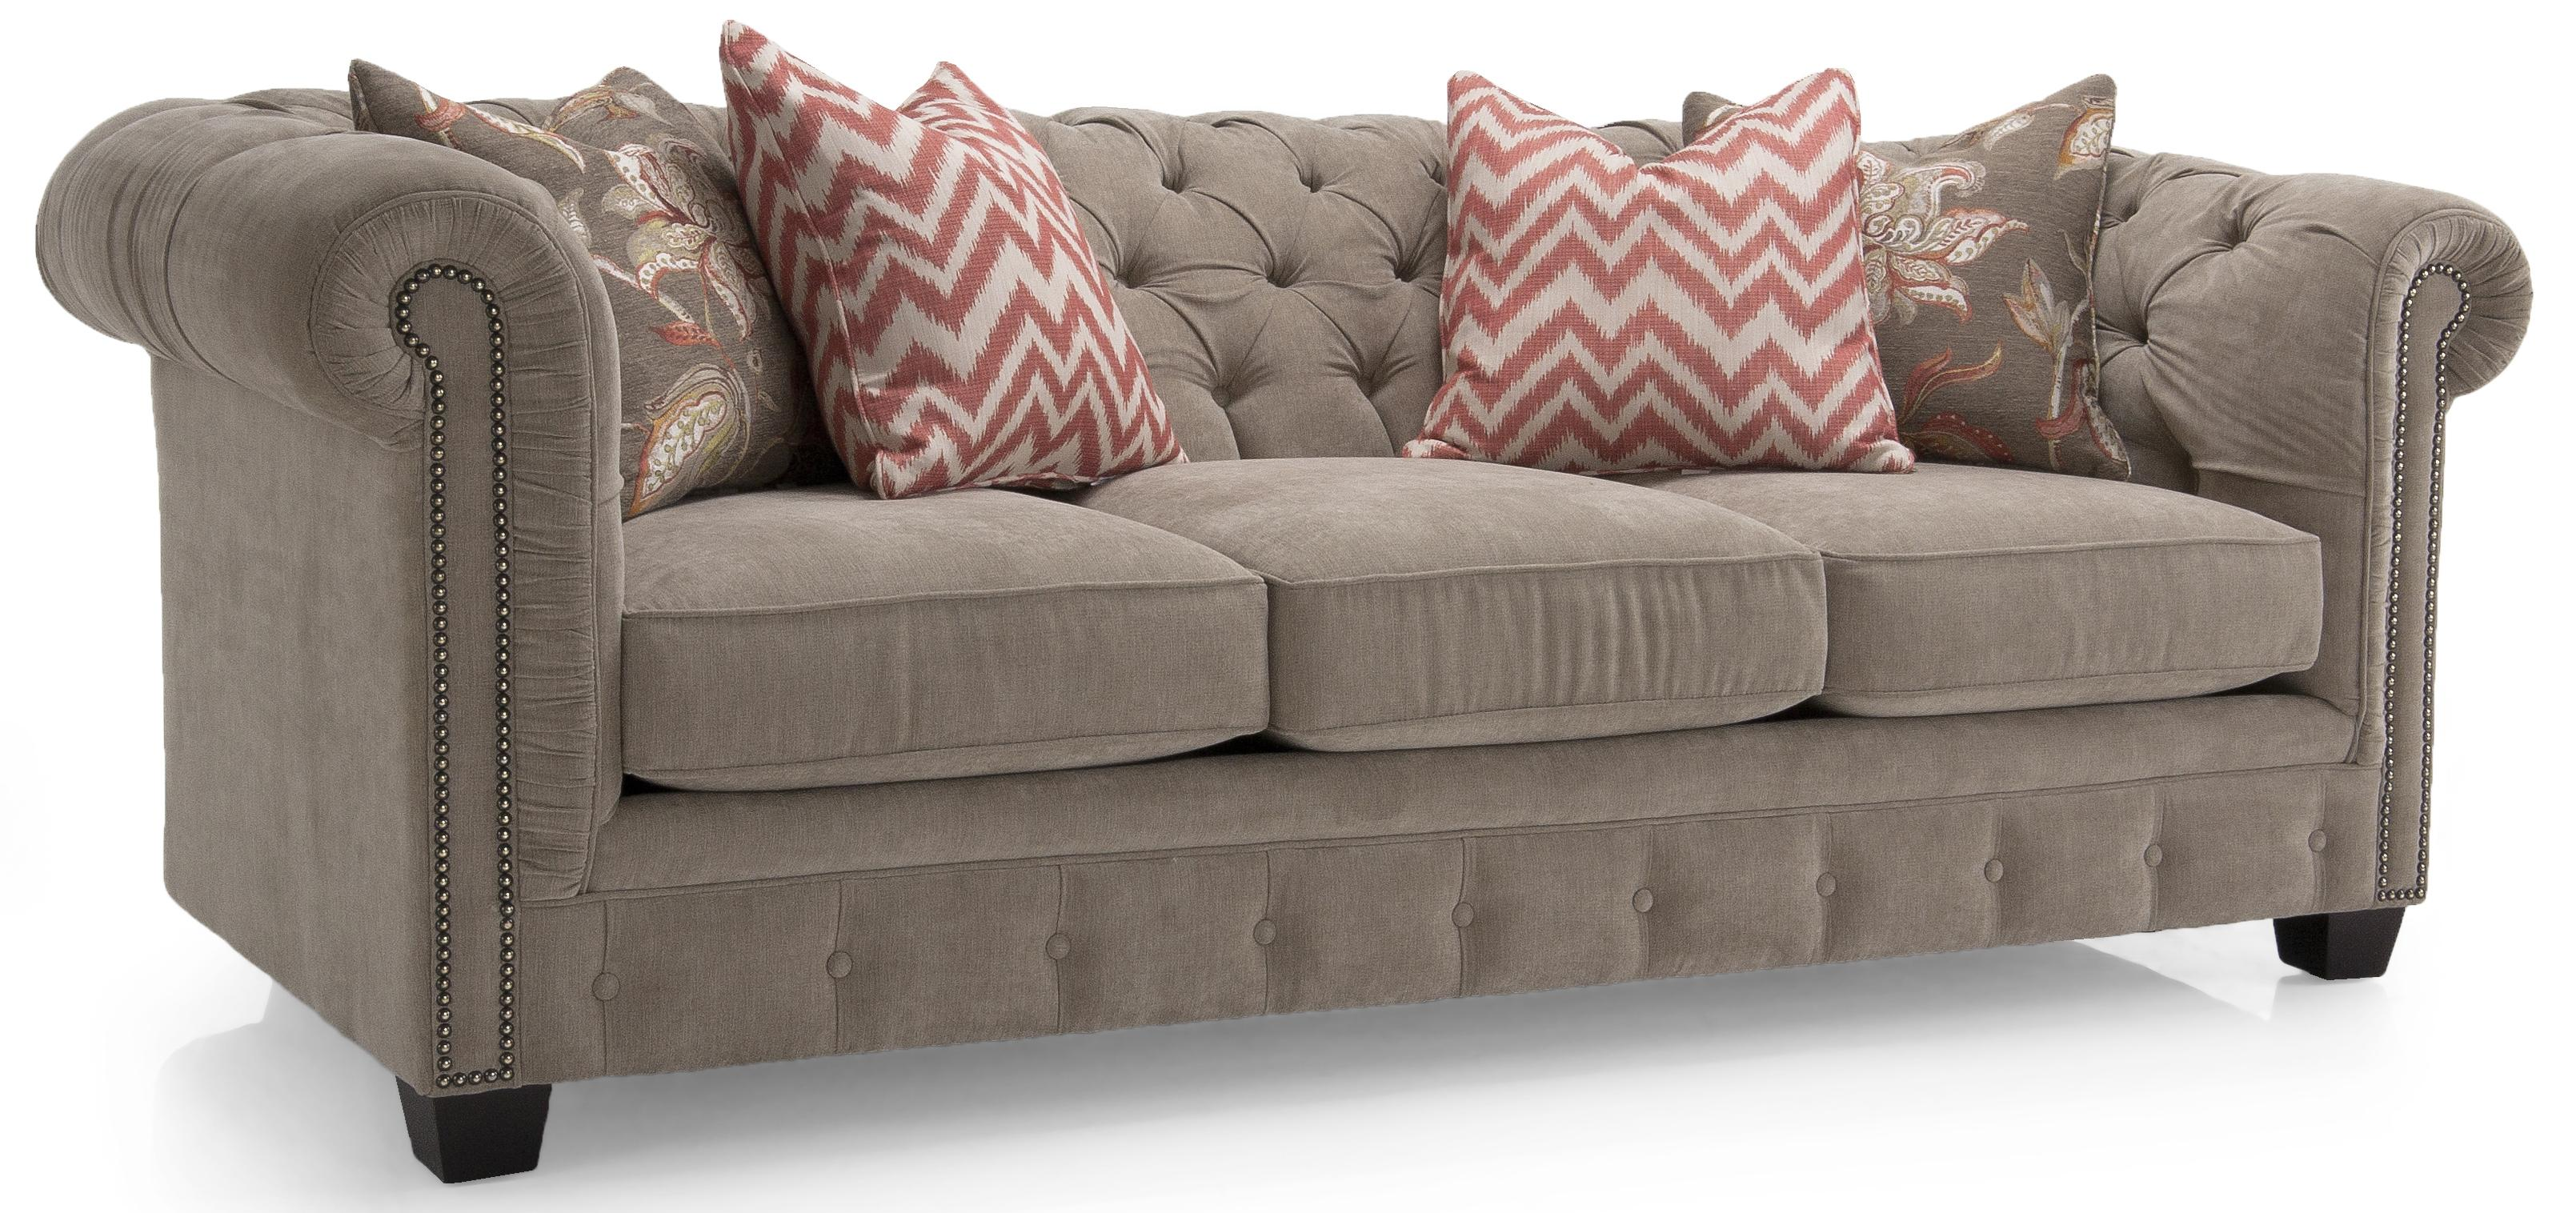 2230 Series Sofa by Decor-Rest at Fine Home Furnishings